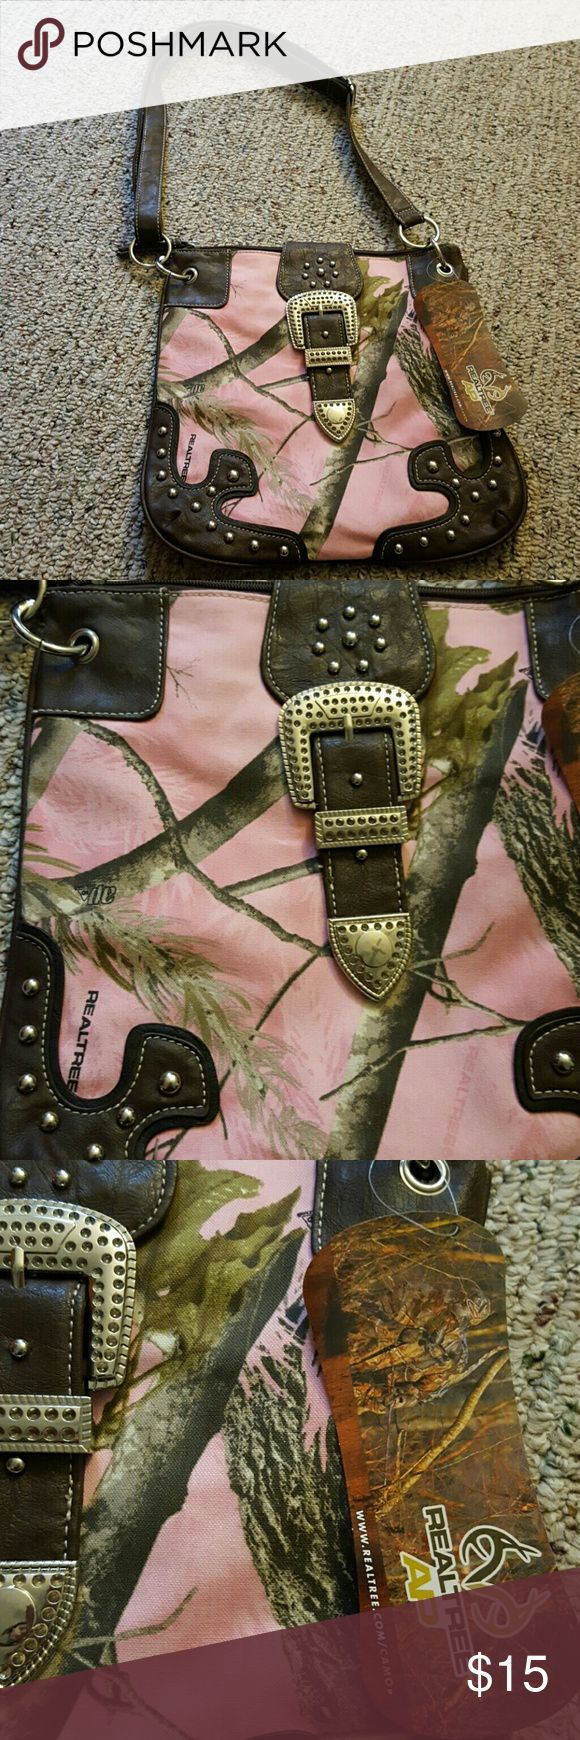 NWT Realtree pink camo purse NWT Realtree pink camo purse. Adjustable strap, zipper and button closure. Inside storage compartments. Measures approximately 11' width, 12' height. As pictured, small snag on back. Realtree Bags Shoulder Bags